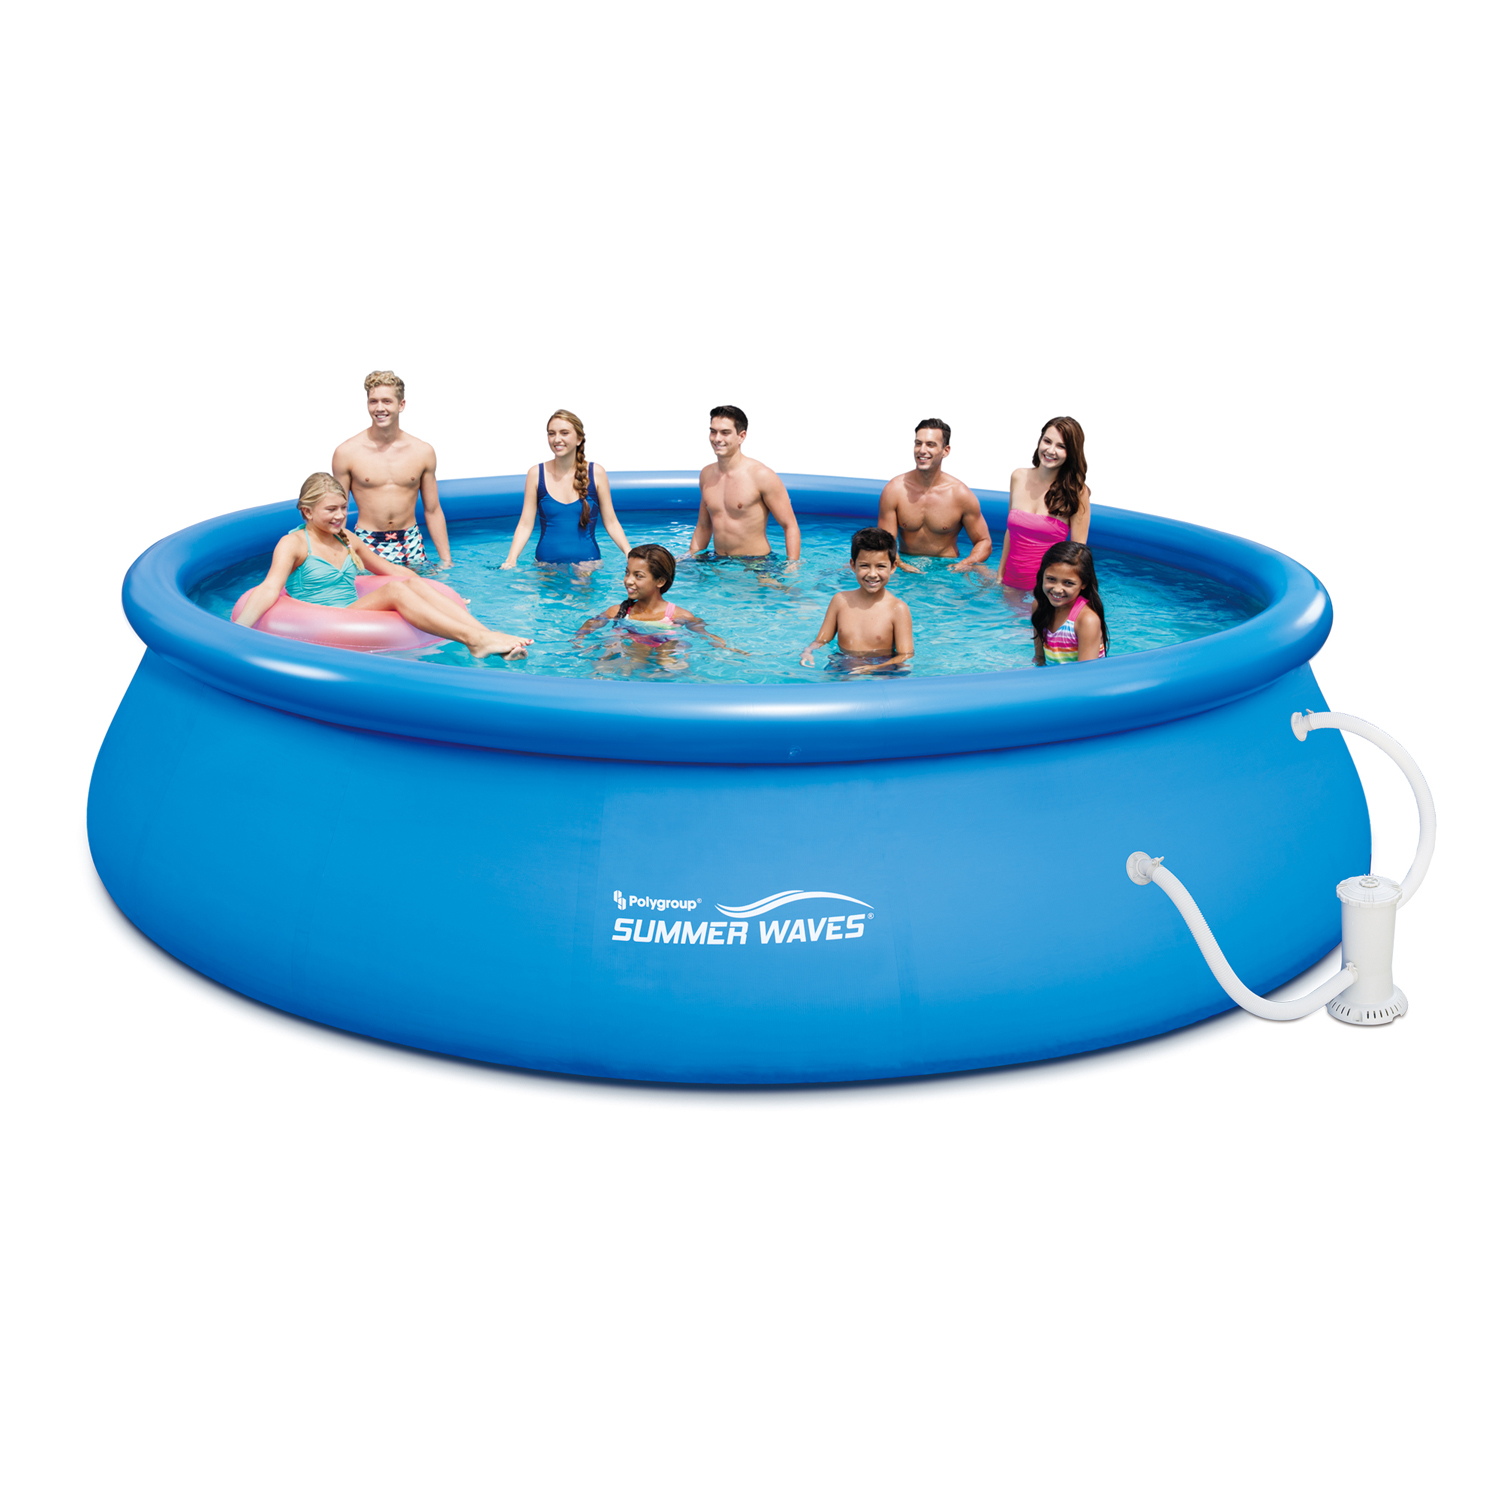 "Summer Waves 18' x 48"" Quick Set Above Ground Swimming Pool with Filter Pump System And Deluxe Accessory Set"